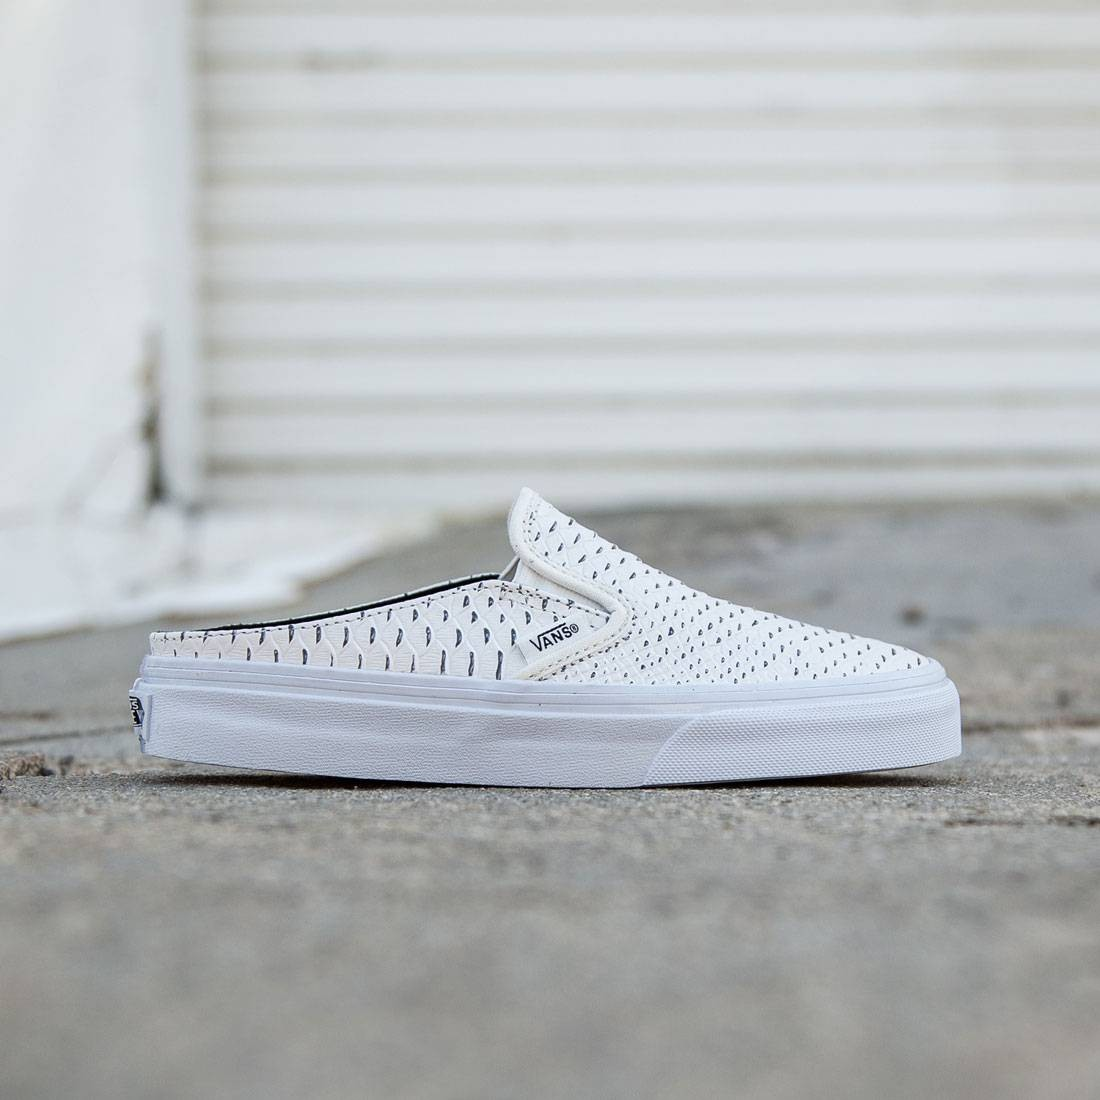 Mule - Embossed Leather white true white